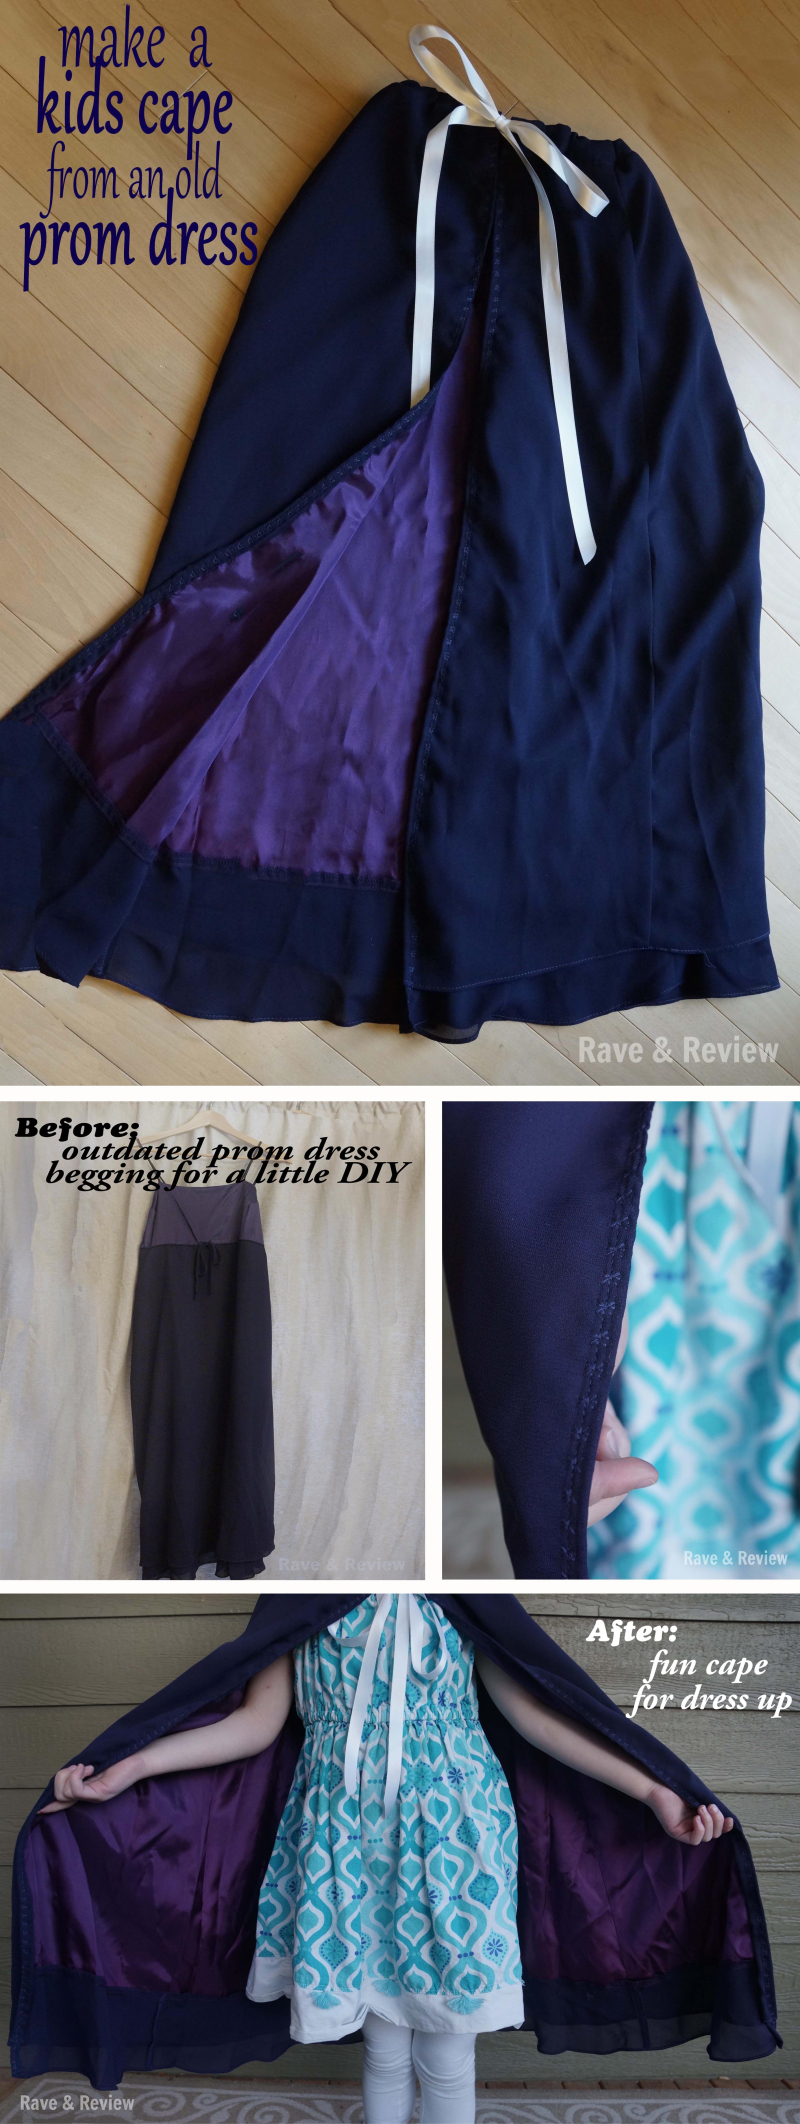 Make a kids cape from a prom dress DIY